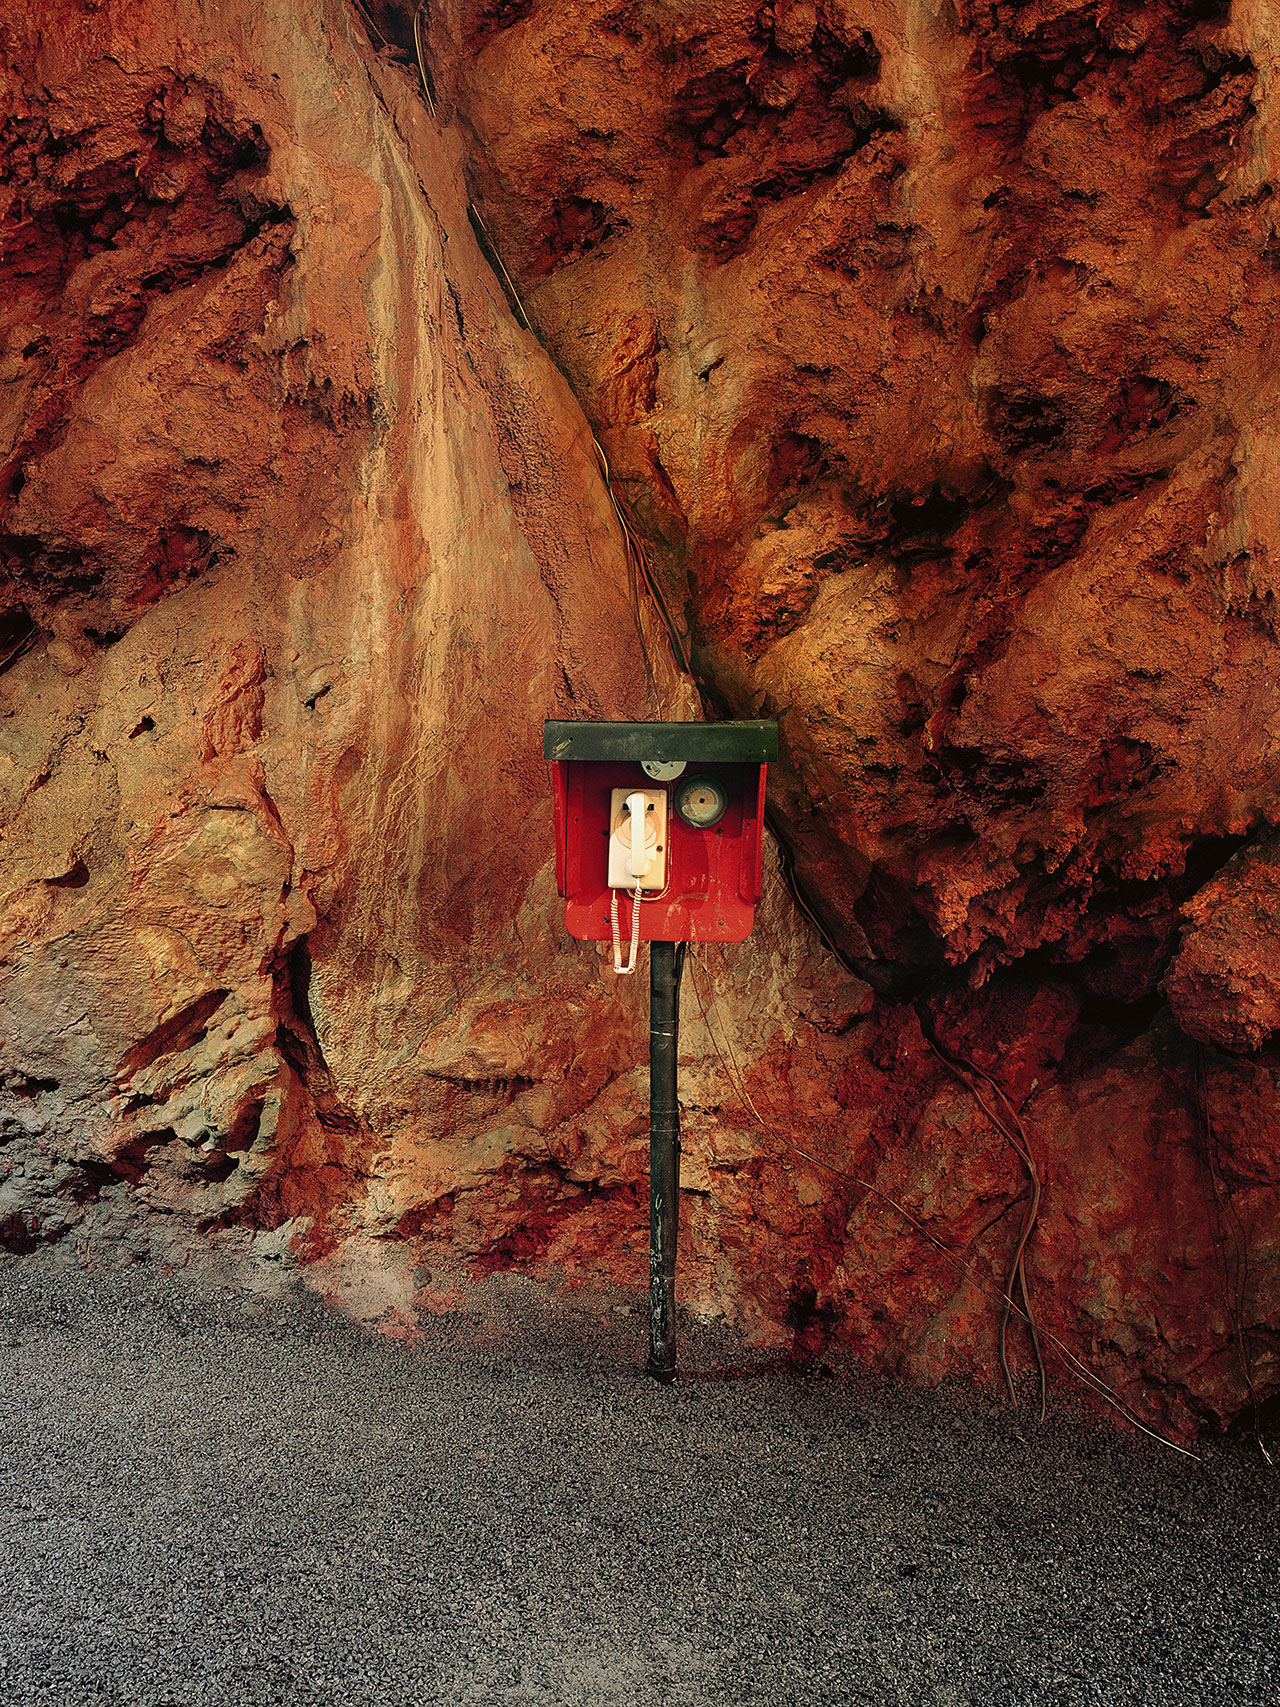 Austin Irving, Shenandoah Caverns Underground Phone, Virginia, 2012.